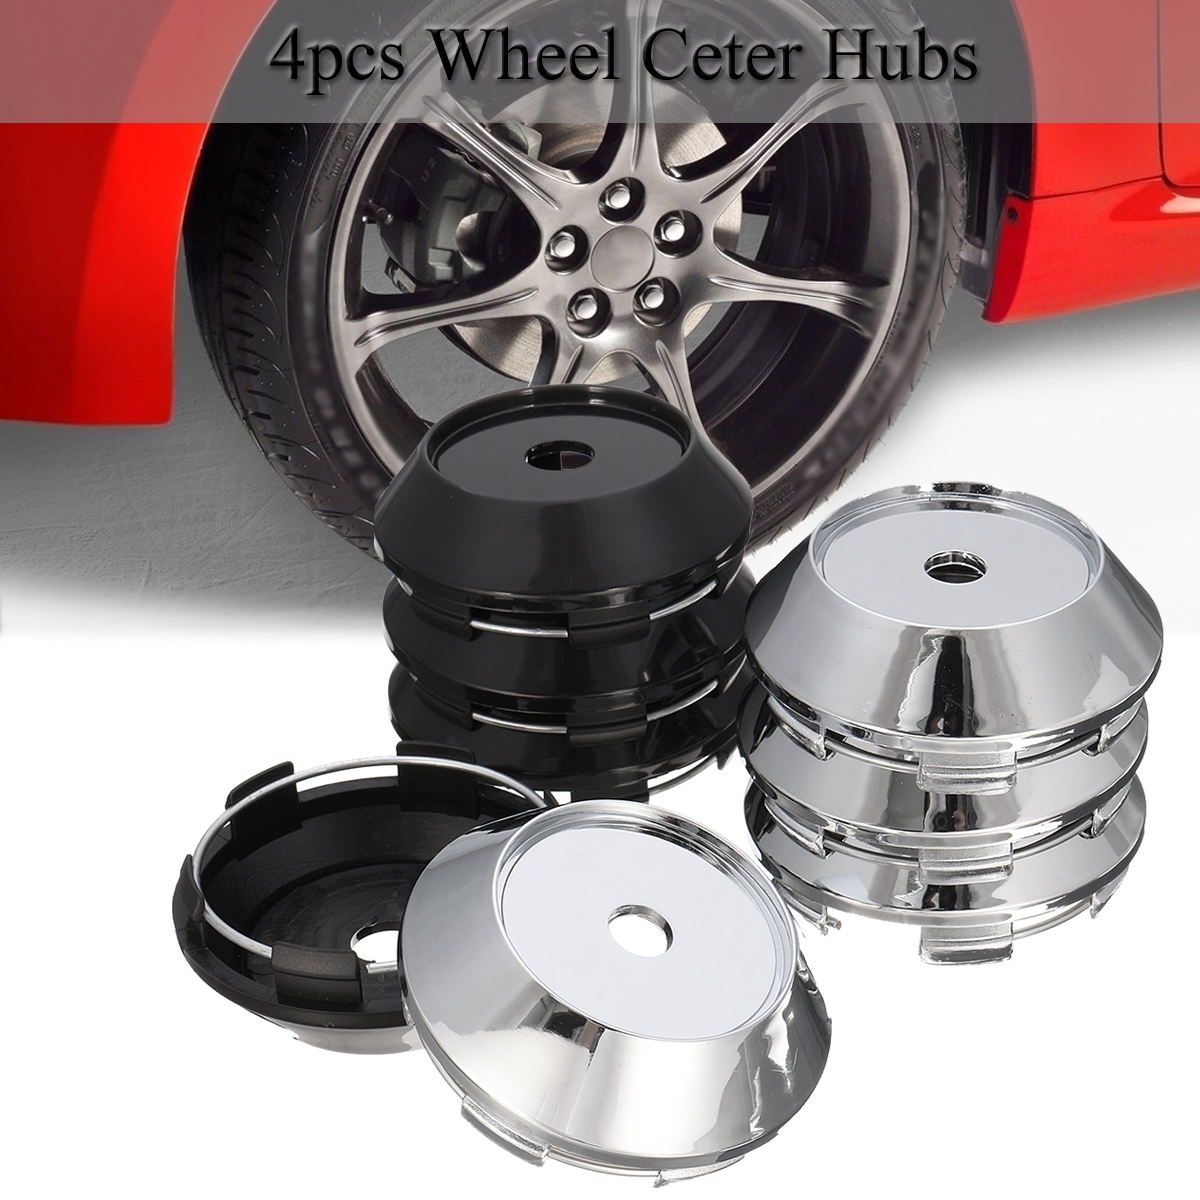 4pcs Universal 68mm ABS Chrome Car Wheel Center Plain Hub Caps Covers Holder